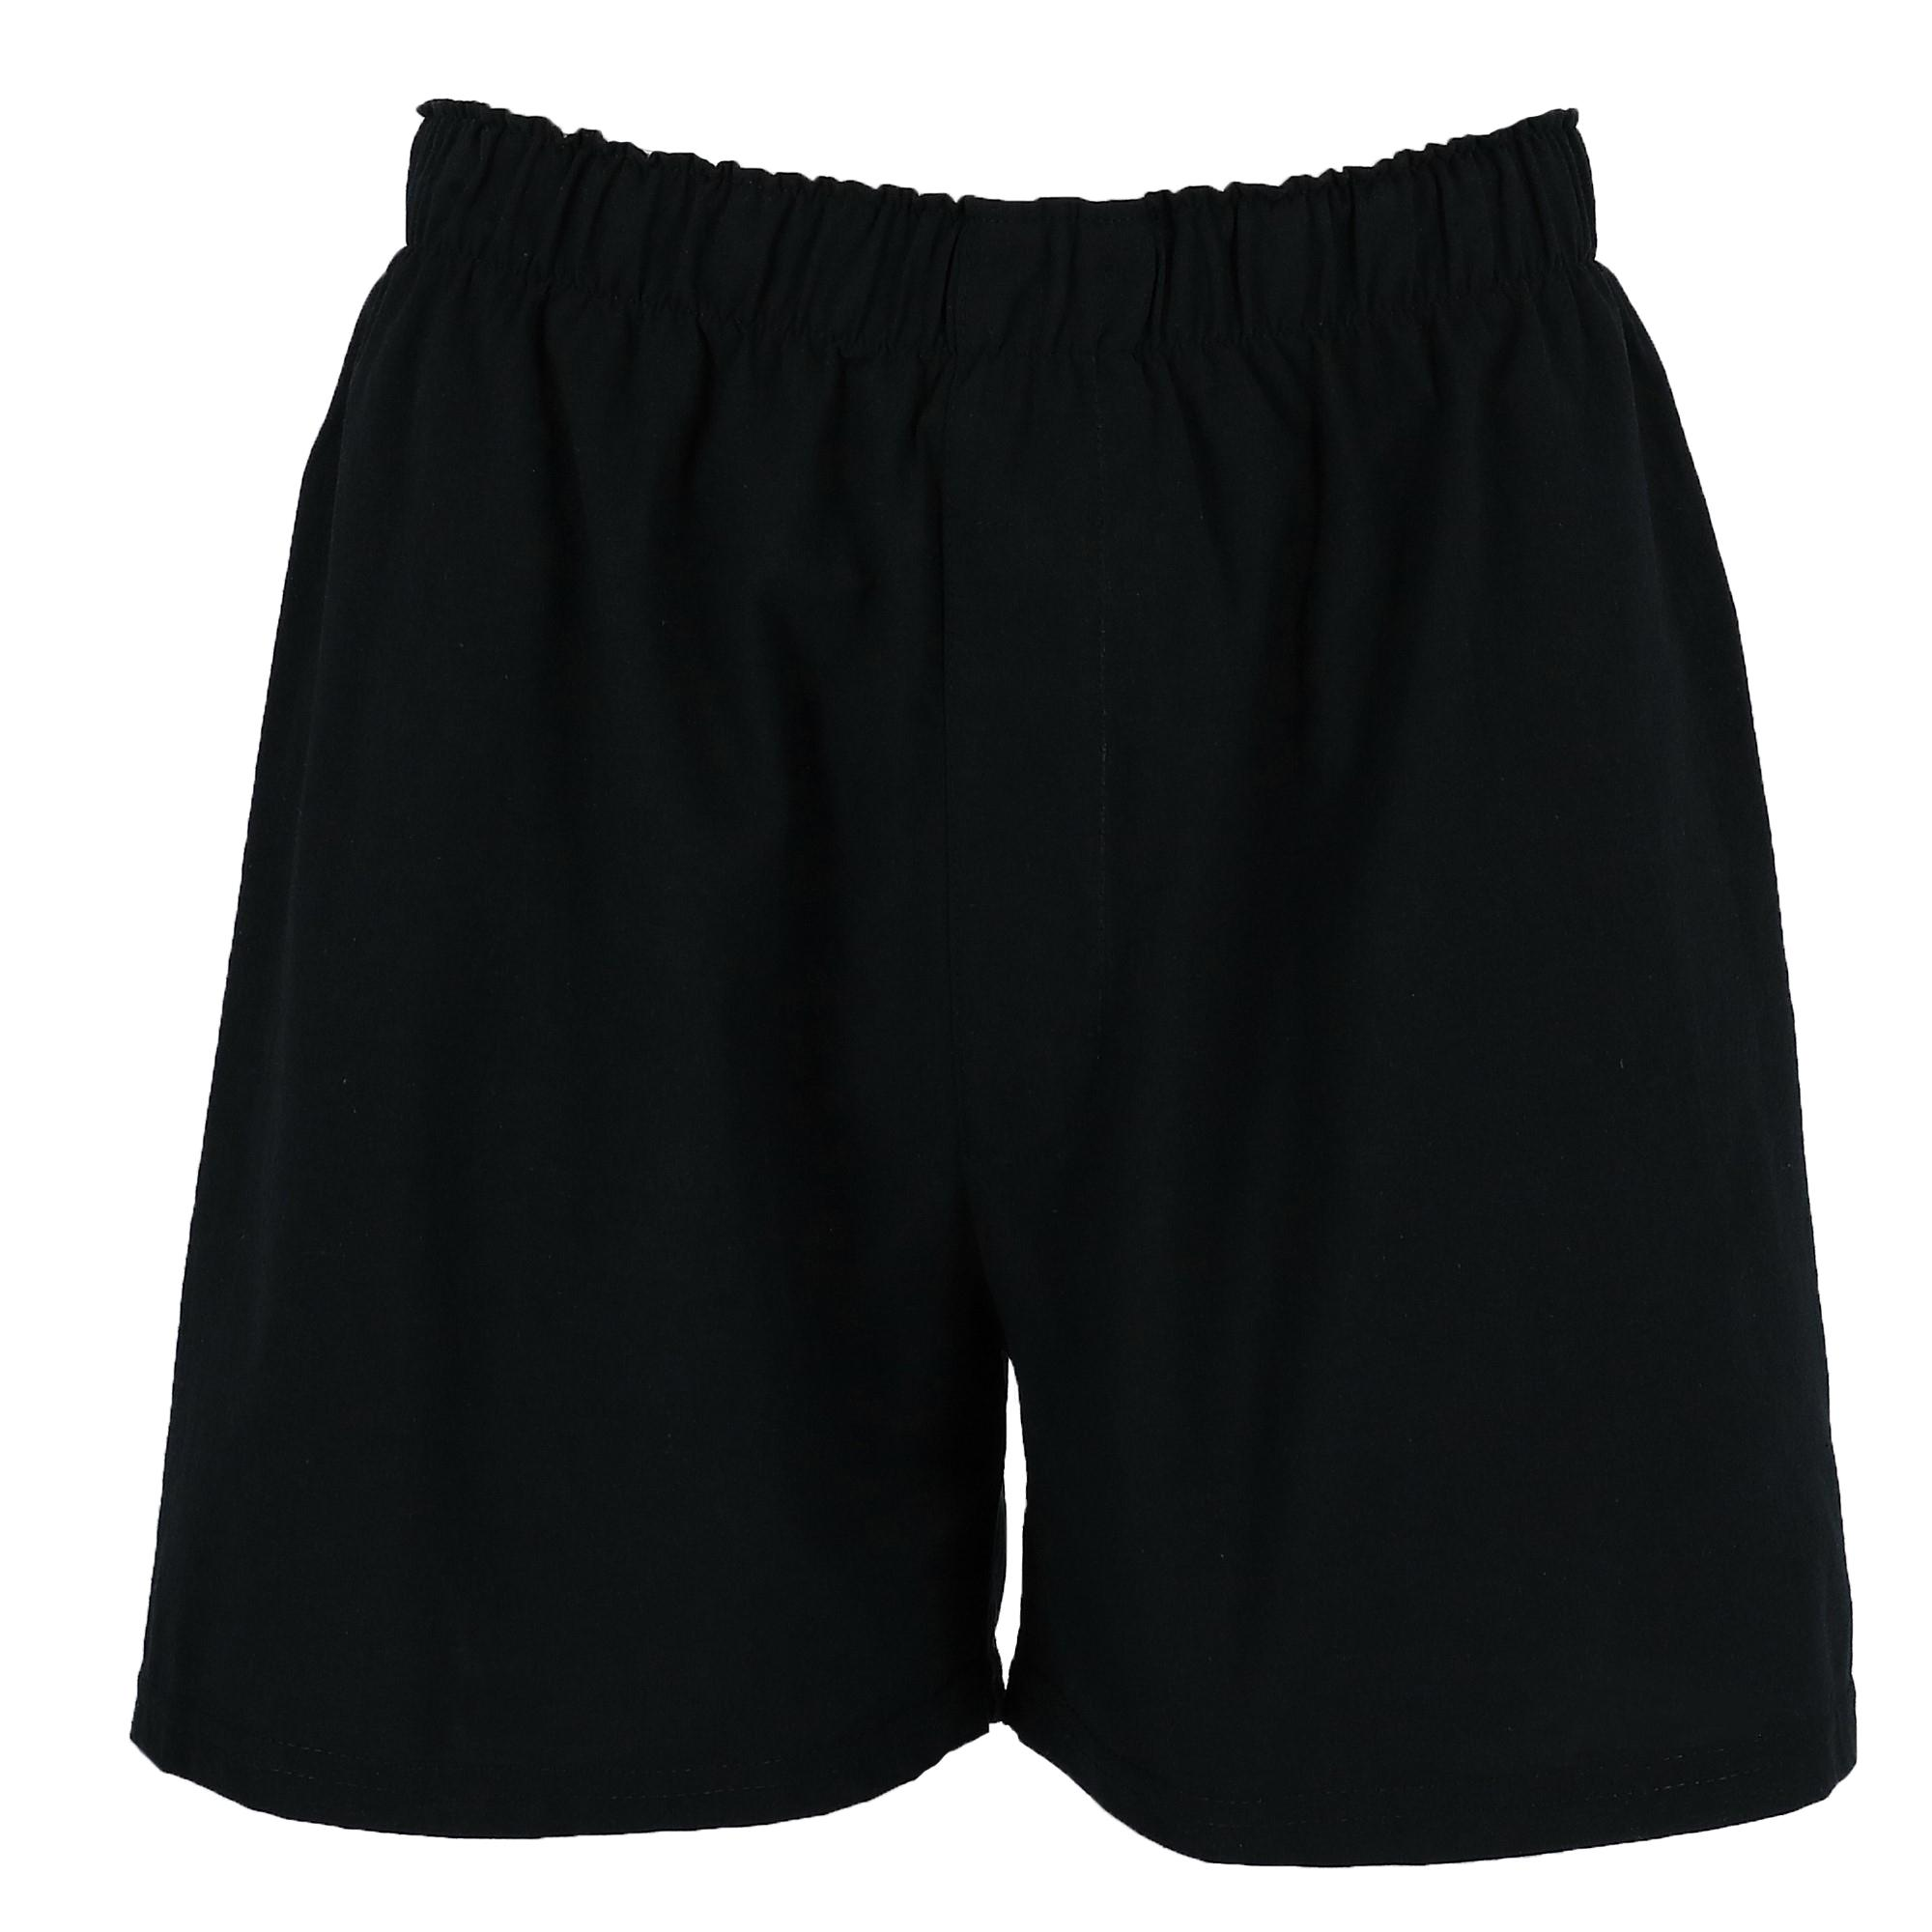 Shop eBay for great deals on Joe Boxer Sleep Shorts for Men. You'll find new or used products in Joe Boxer Sleep Shorts for Men on eBay. Free shipping on selected items.